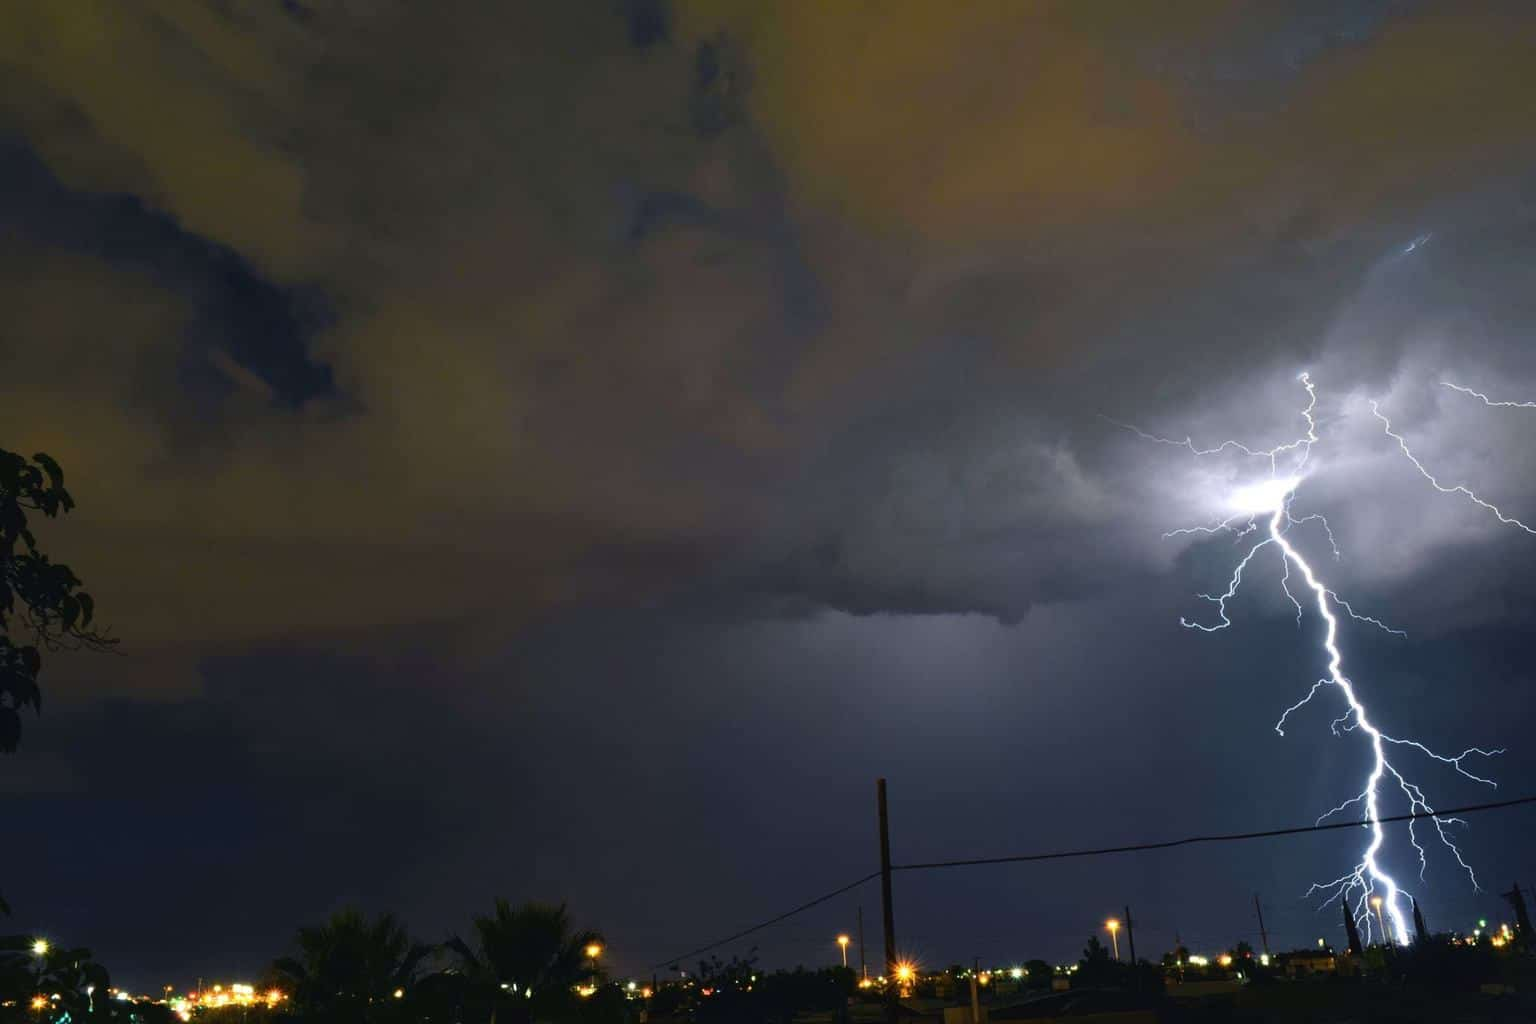 Took this last year. Still waiting for our first Thunderstorm!!